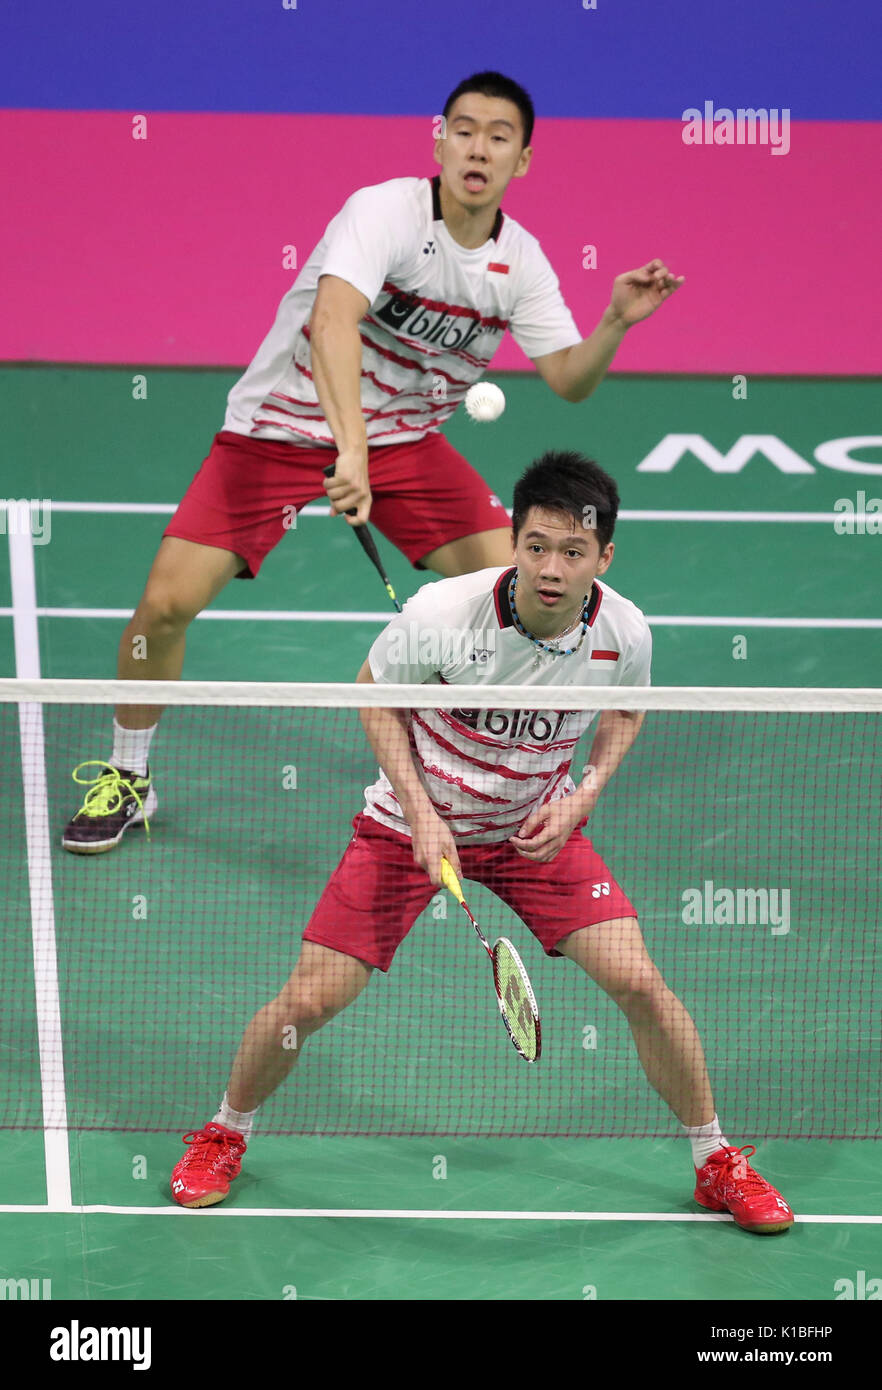 Indonesia's Marcus Fernaldi Gideon (front) and Kevin Sanjaya Sukamuljo in the quarter finals during day five of the 2017 BWF World Championships at the Emirates Arena, Glasgow. PRESS ASSOCIATION Photo. Picture date: Friday August 25, 2017. See PA story BADMINTON World. Photo credit should read: Jane Barlow/PA Wire. RESTRICTIONS: Editorial use only. No commercial use. - Stock Image